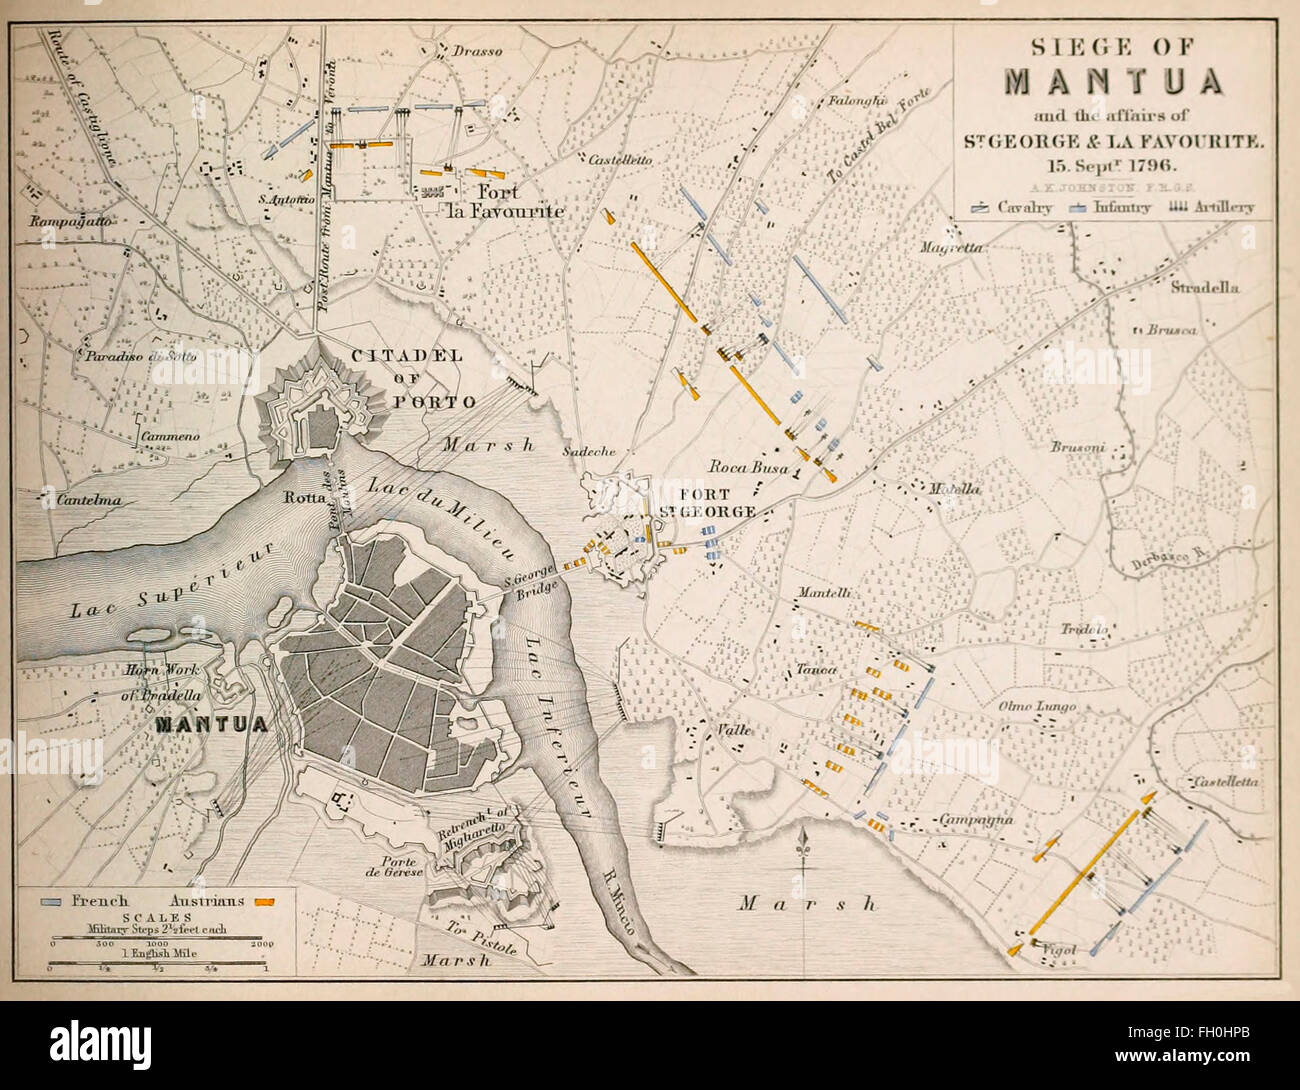 Map of Siege of Mantua - During the Siege of Mantua, which lasted from 4 July 1796 to 2 February 1797 with a short - Stock Image